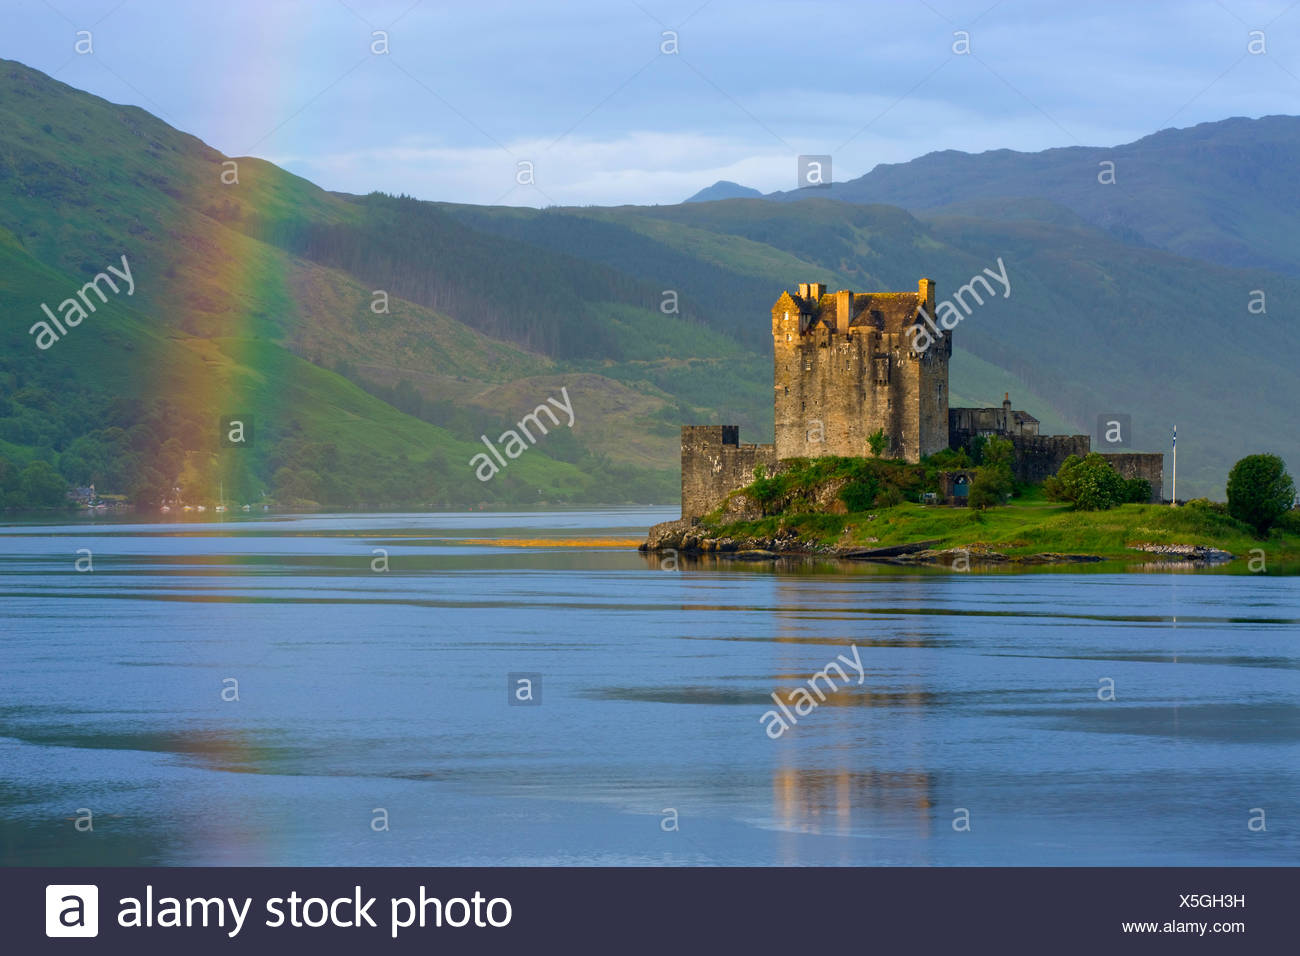 Eilean Donan Castle, Great Britain, Scotland, Europe, sea, coast, tides, flood, island, isle, castle, thunderstorm mood, rainbow - Stock Image